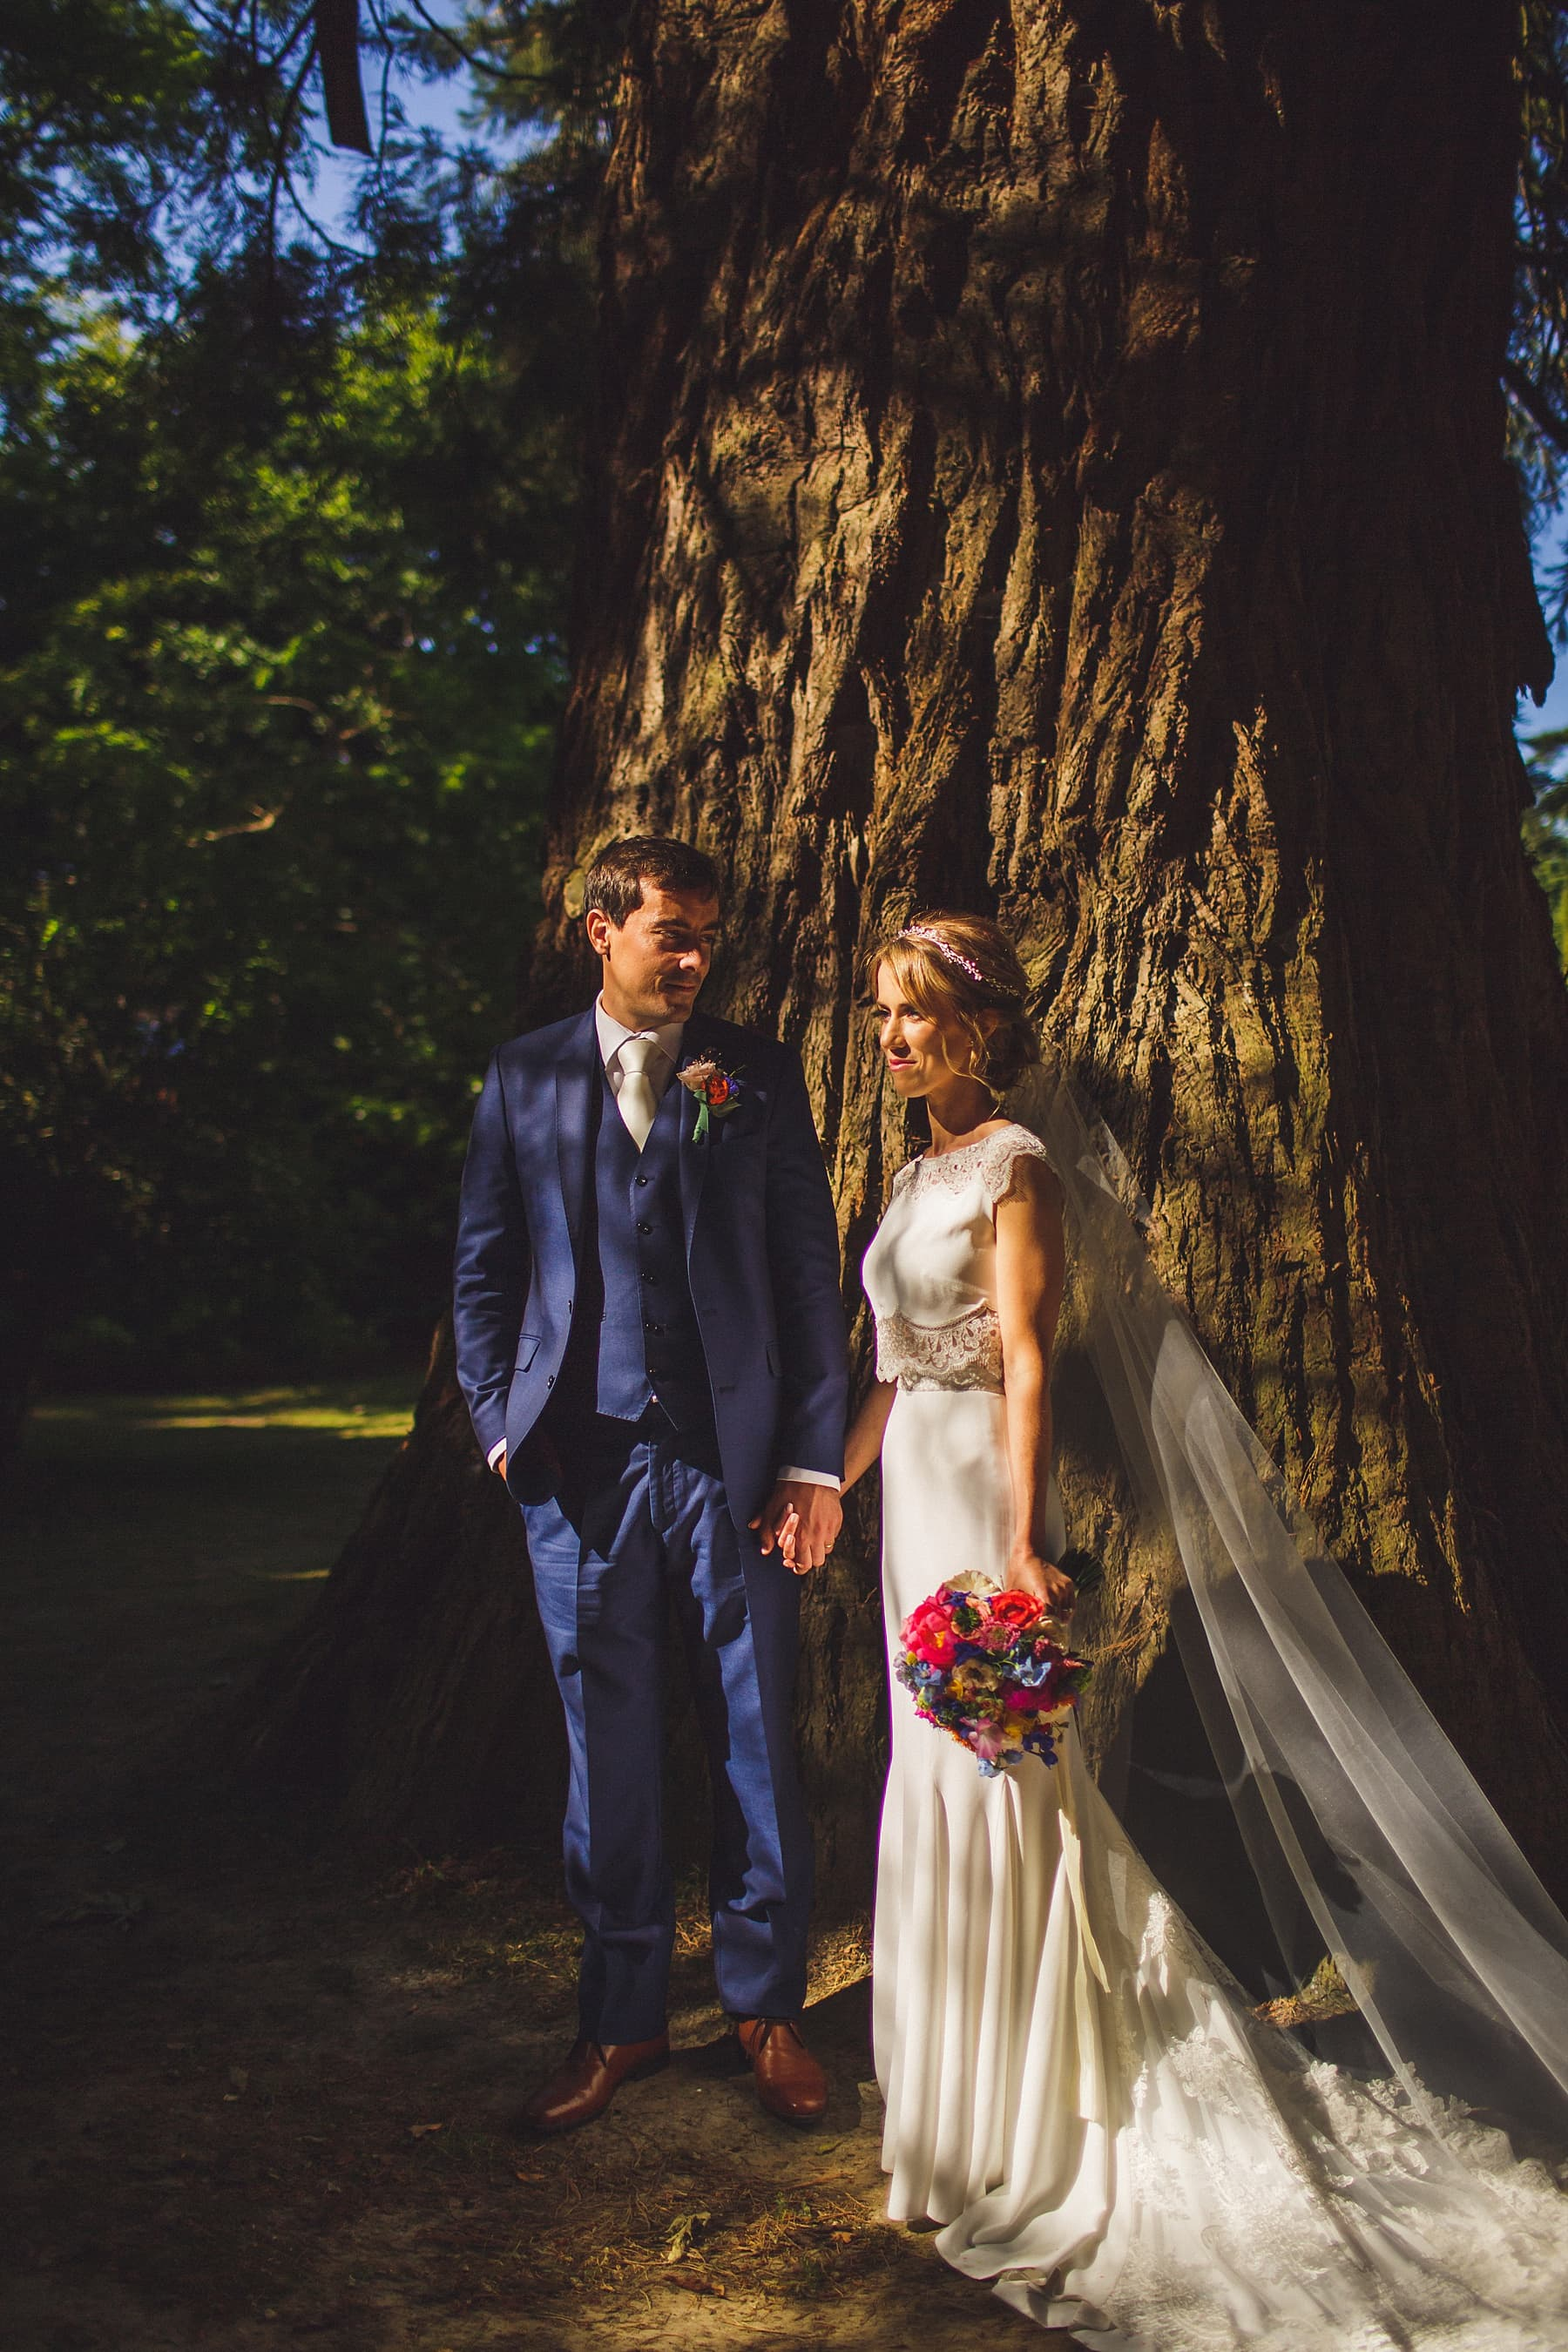 belfast city wedding photographer,port eliot wedding,luttrelstown castle wedding,langton house hotel wedding,tinakilly house wedding,kilruddery house wedding,sparkler exit,first look,